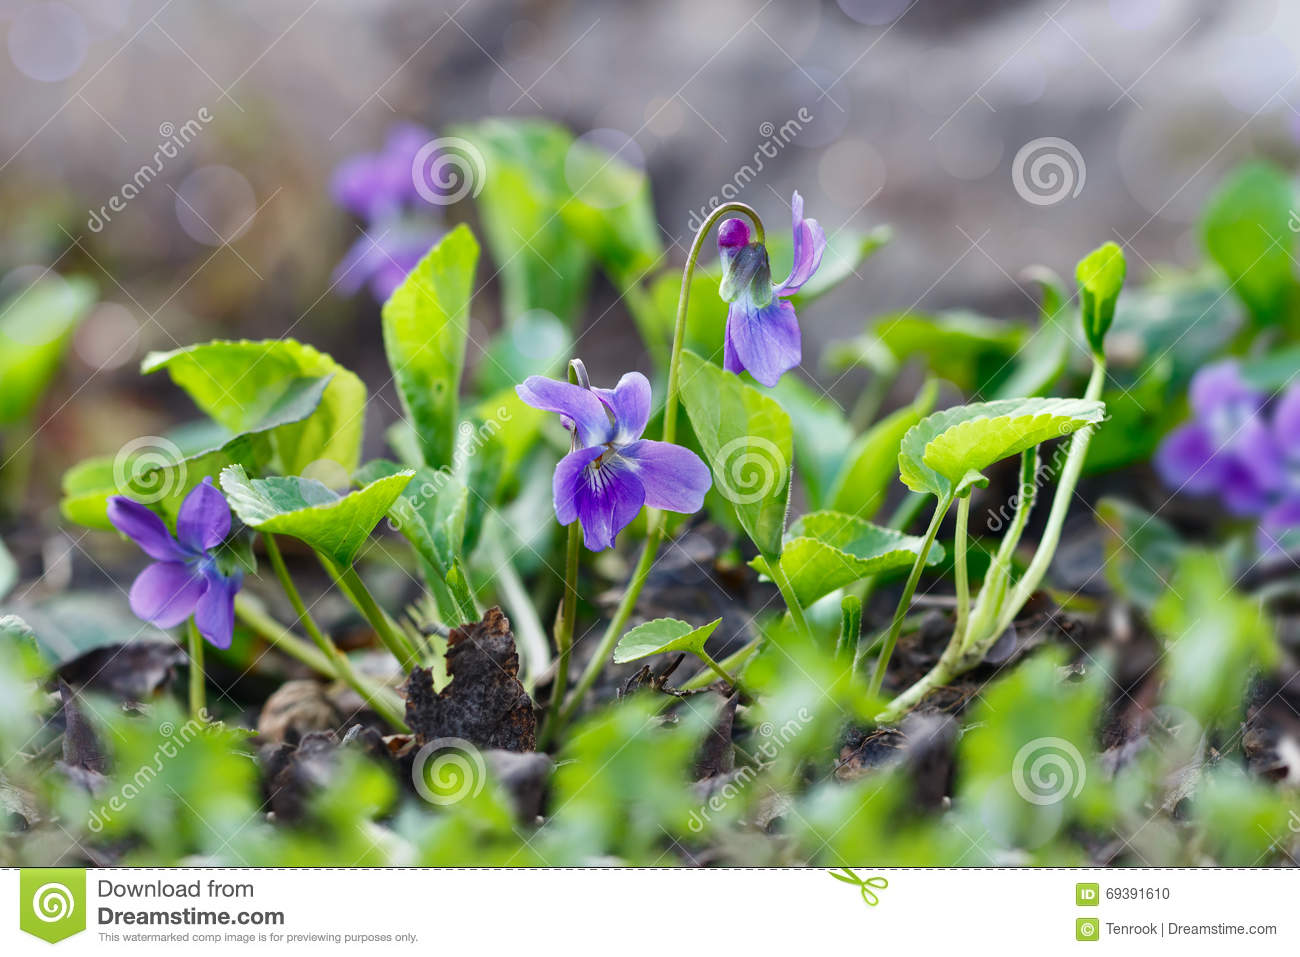 Closeup purple flowers scientific name viola odorata sweet vi closeup purple flowers scientific name viola odorata sweet violet english violet common violet or garden violet blooming in spring in wild meadow mightylinksfo